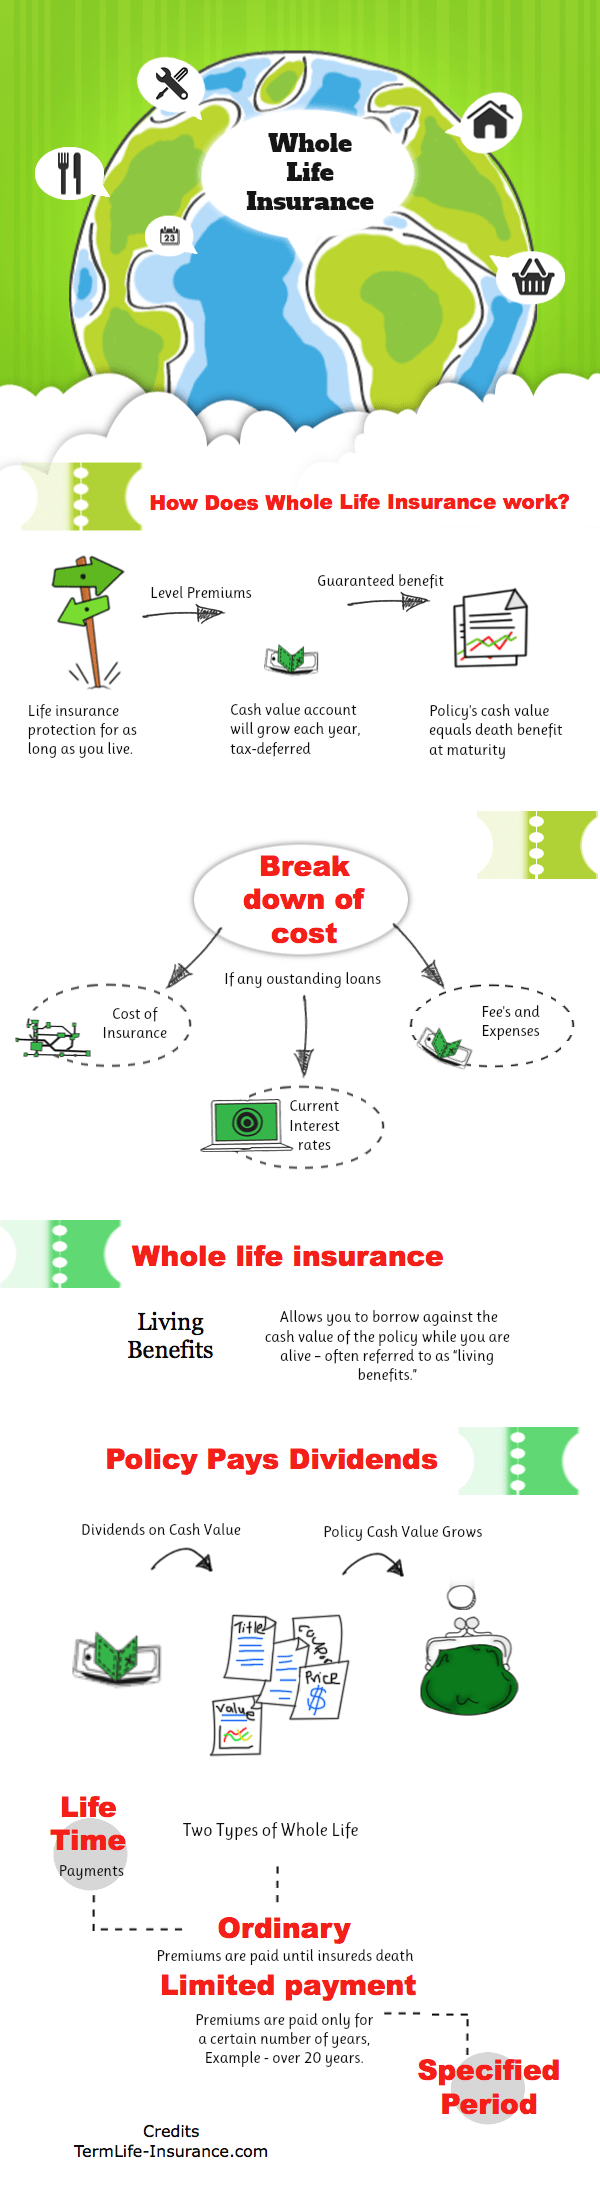 Full Life Insurance Quotes Instant Whole Life Insurance Quotesup To $100000 In Coverage.